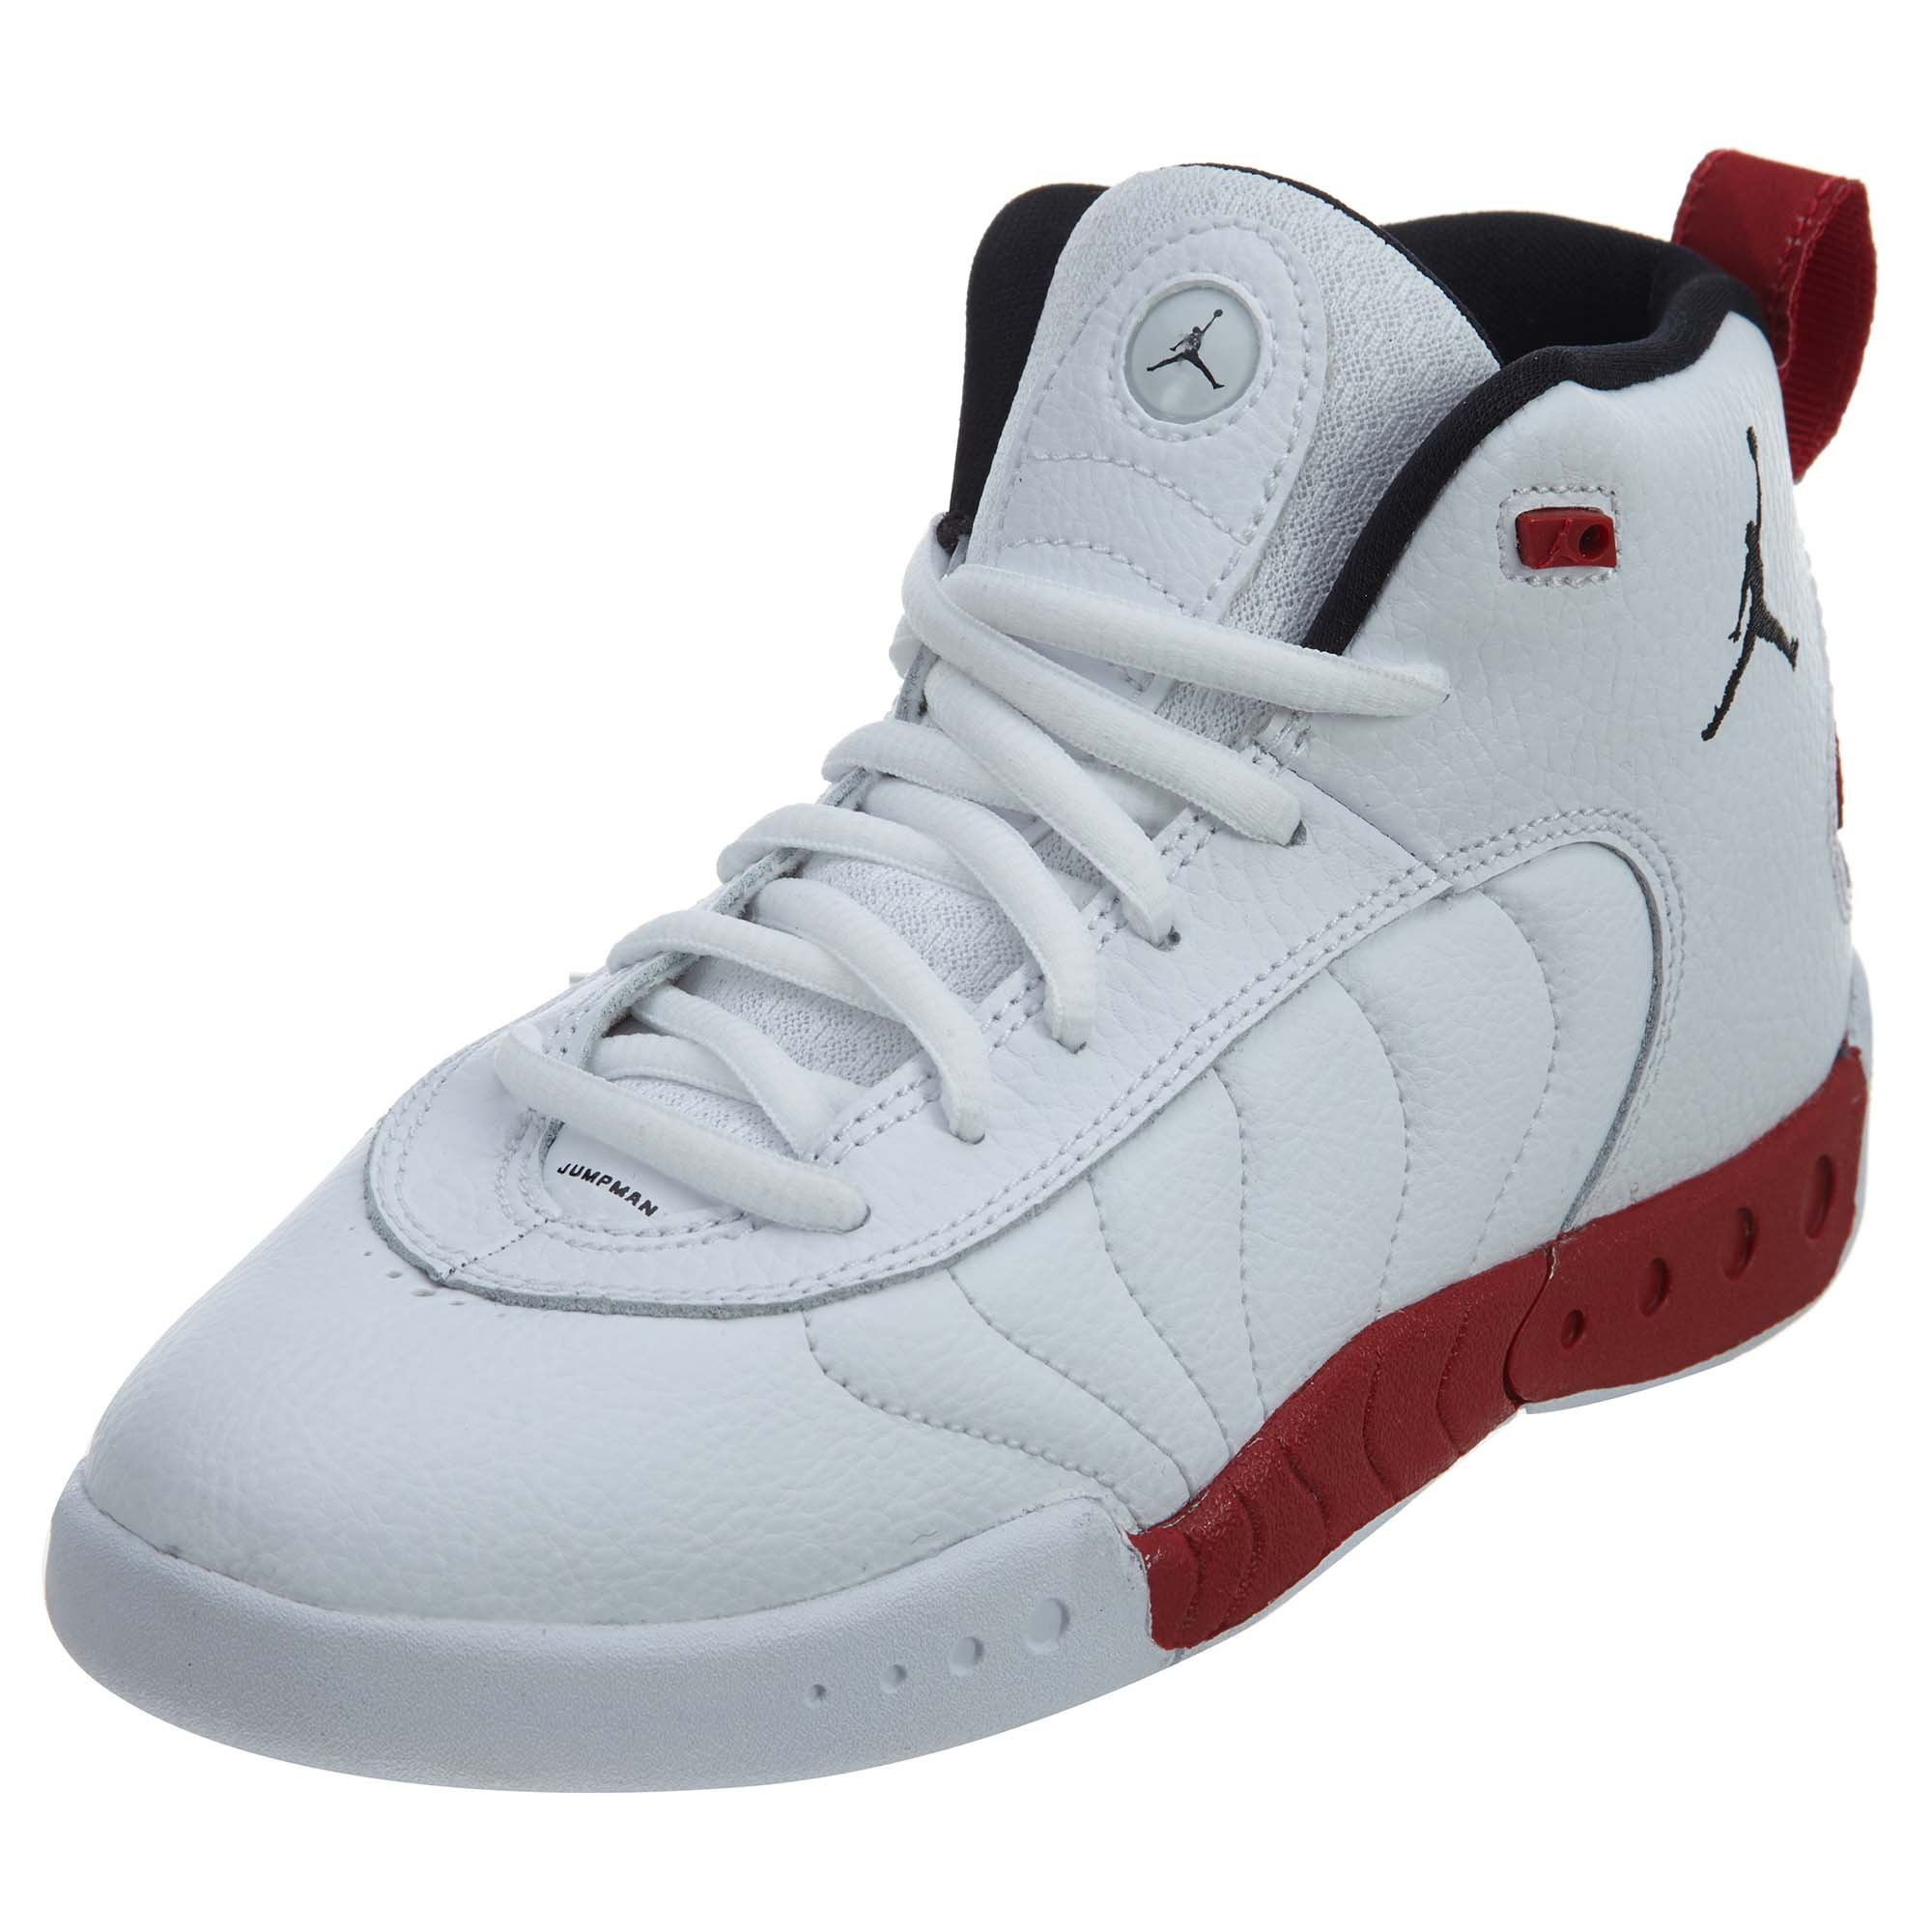 Jordan Jumpman Pro Little Kids Style: 909419-120 Size: 10.5 Y US by Jordan